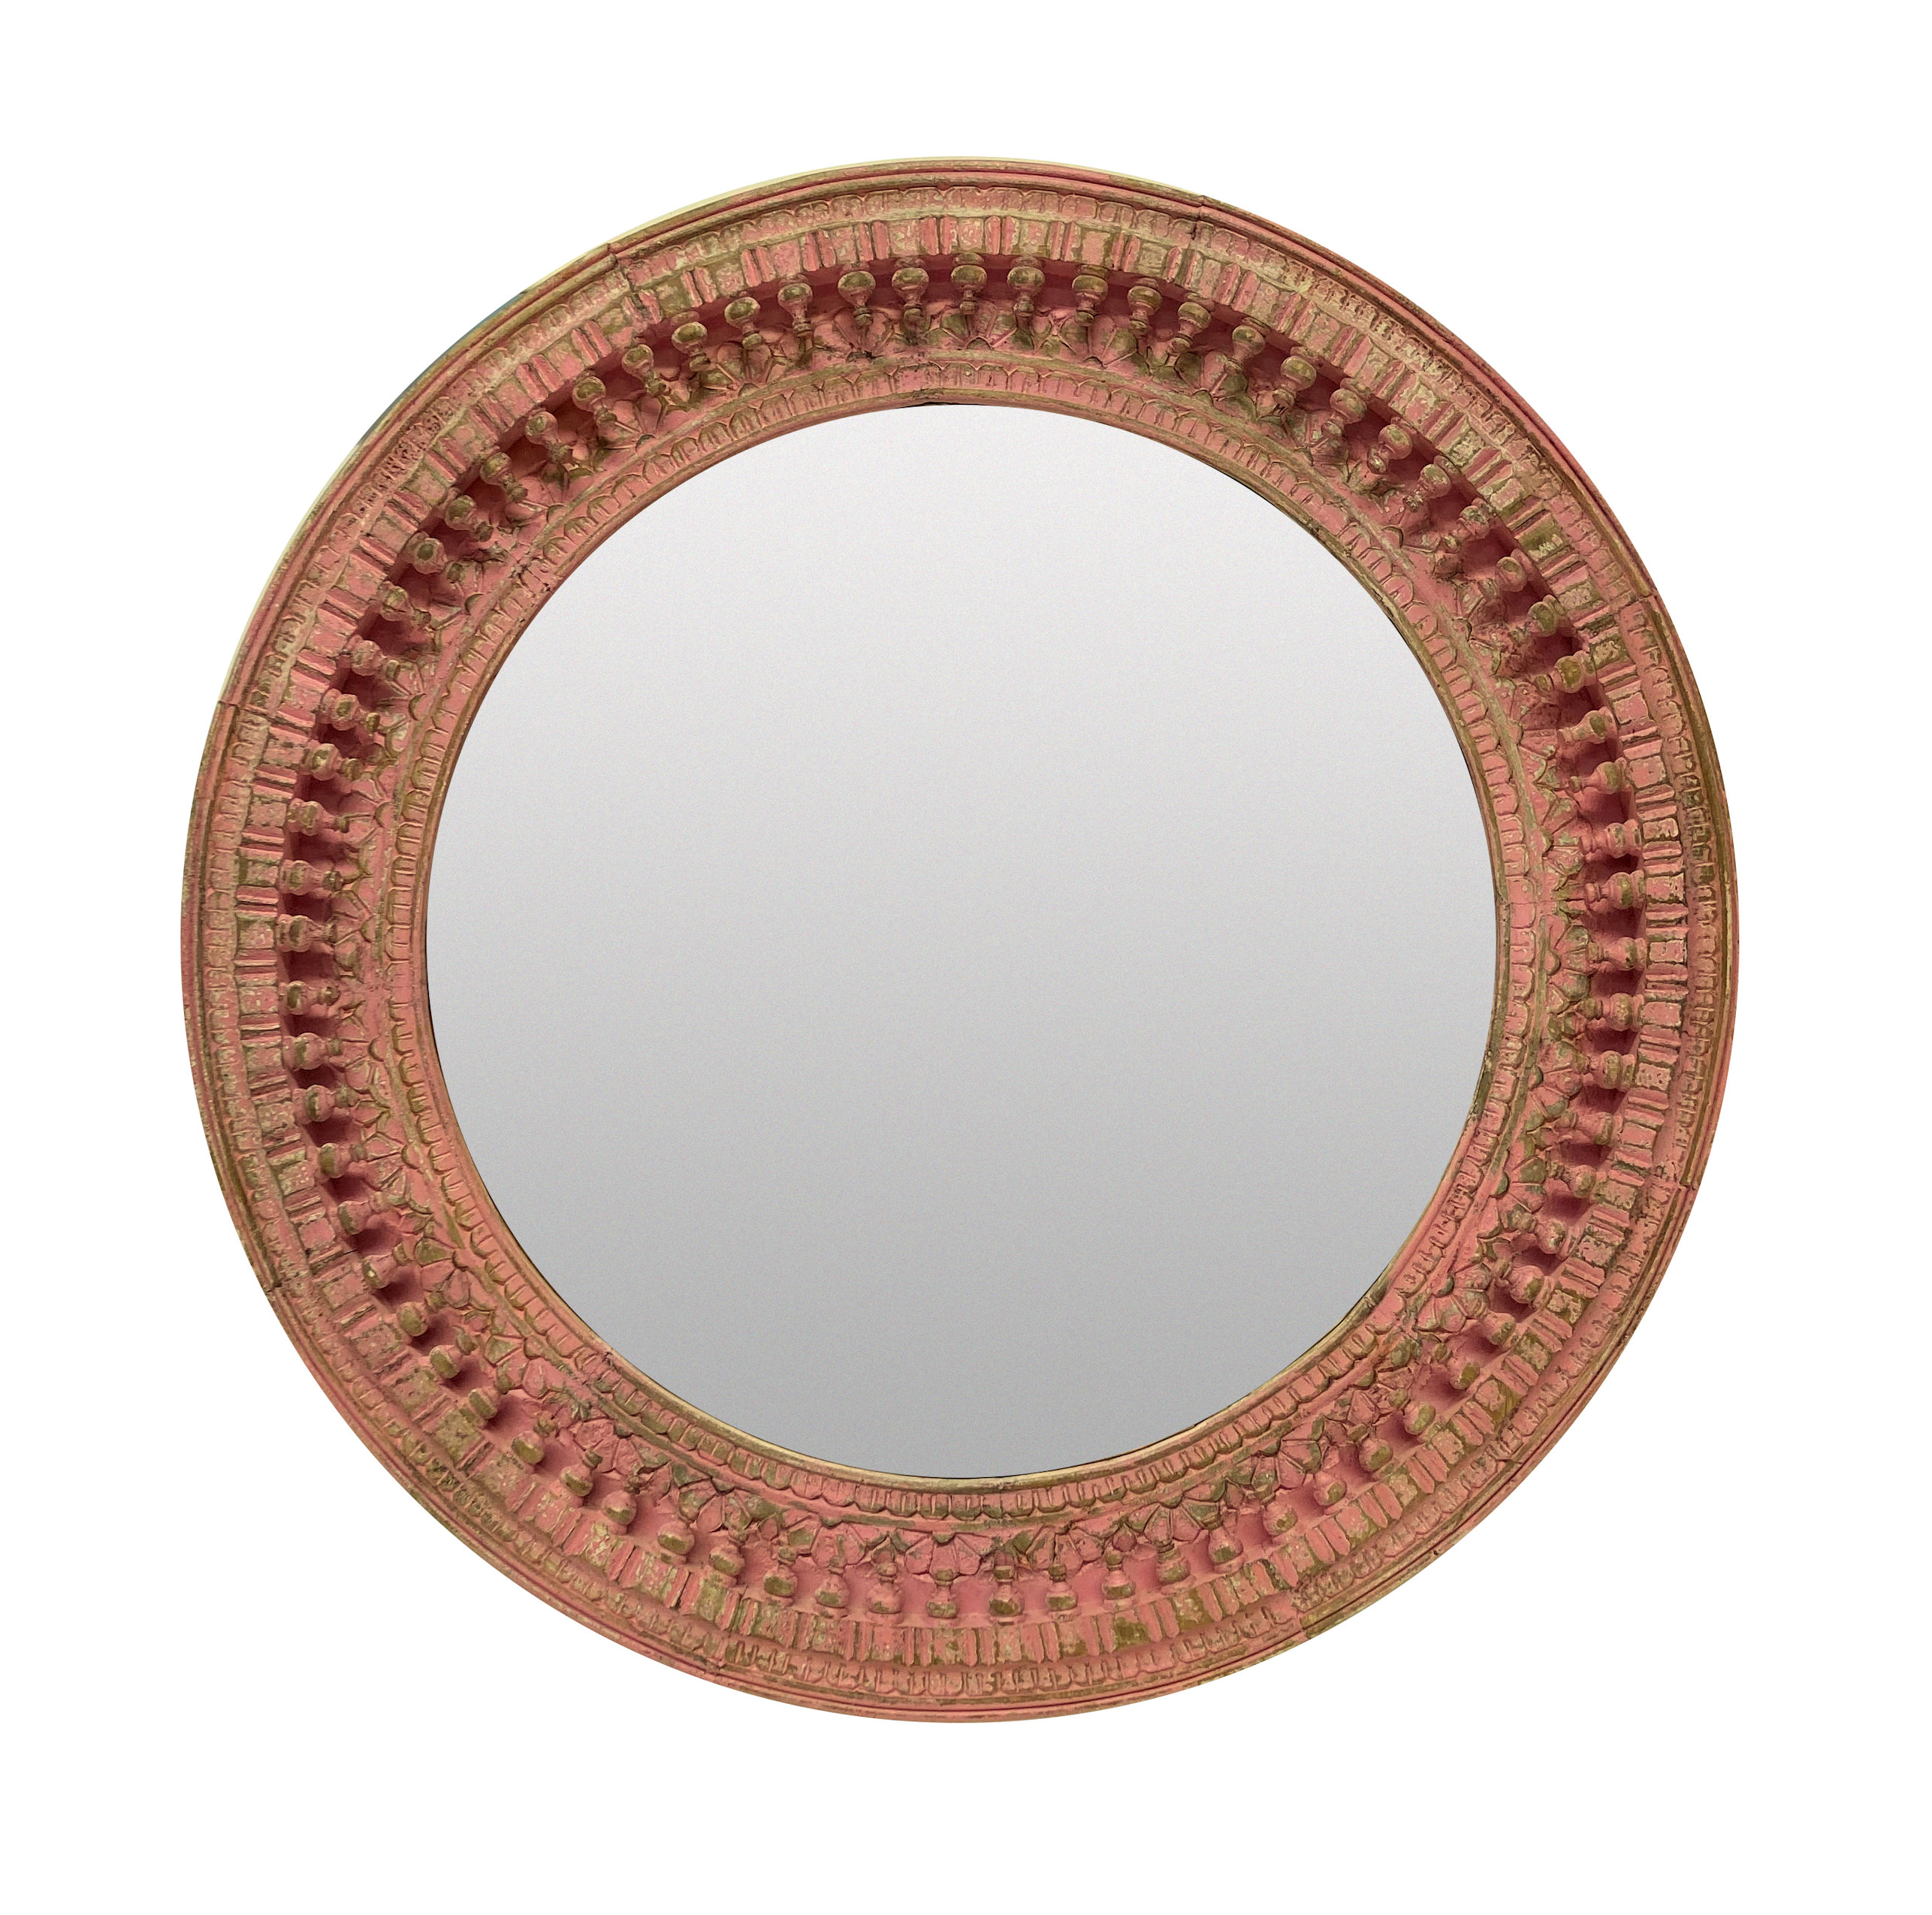 A LARGE INDIAN CARVED & PAINTED CIRCULAR MIRROR